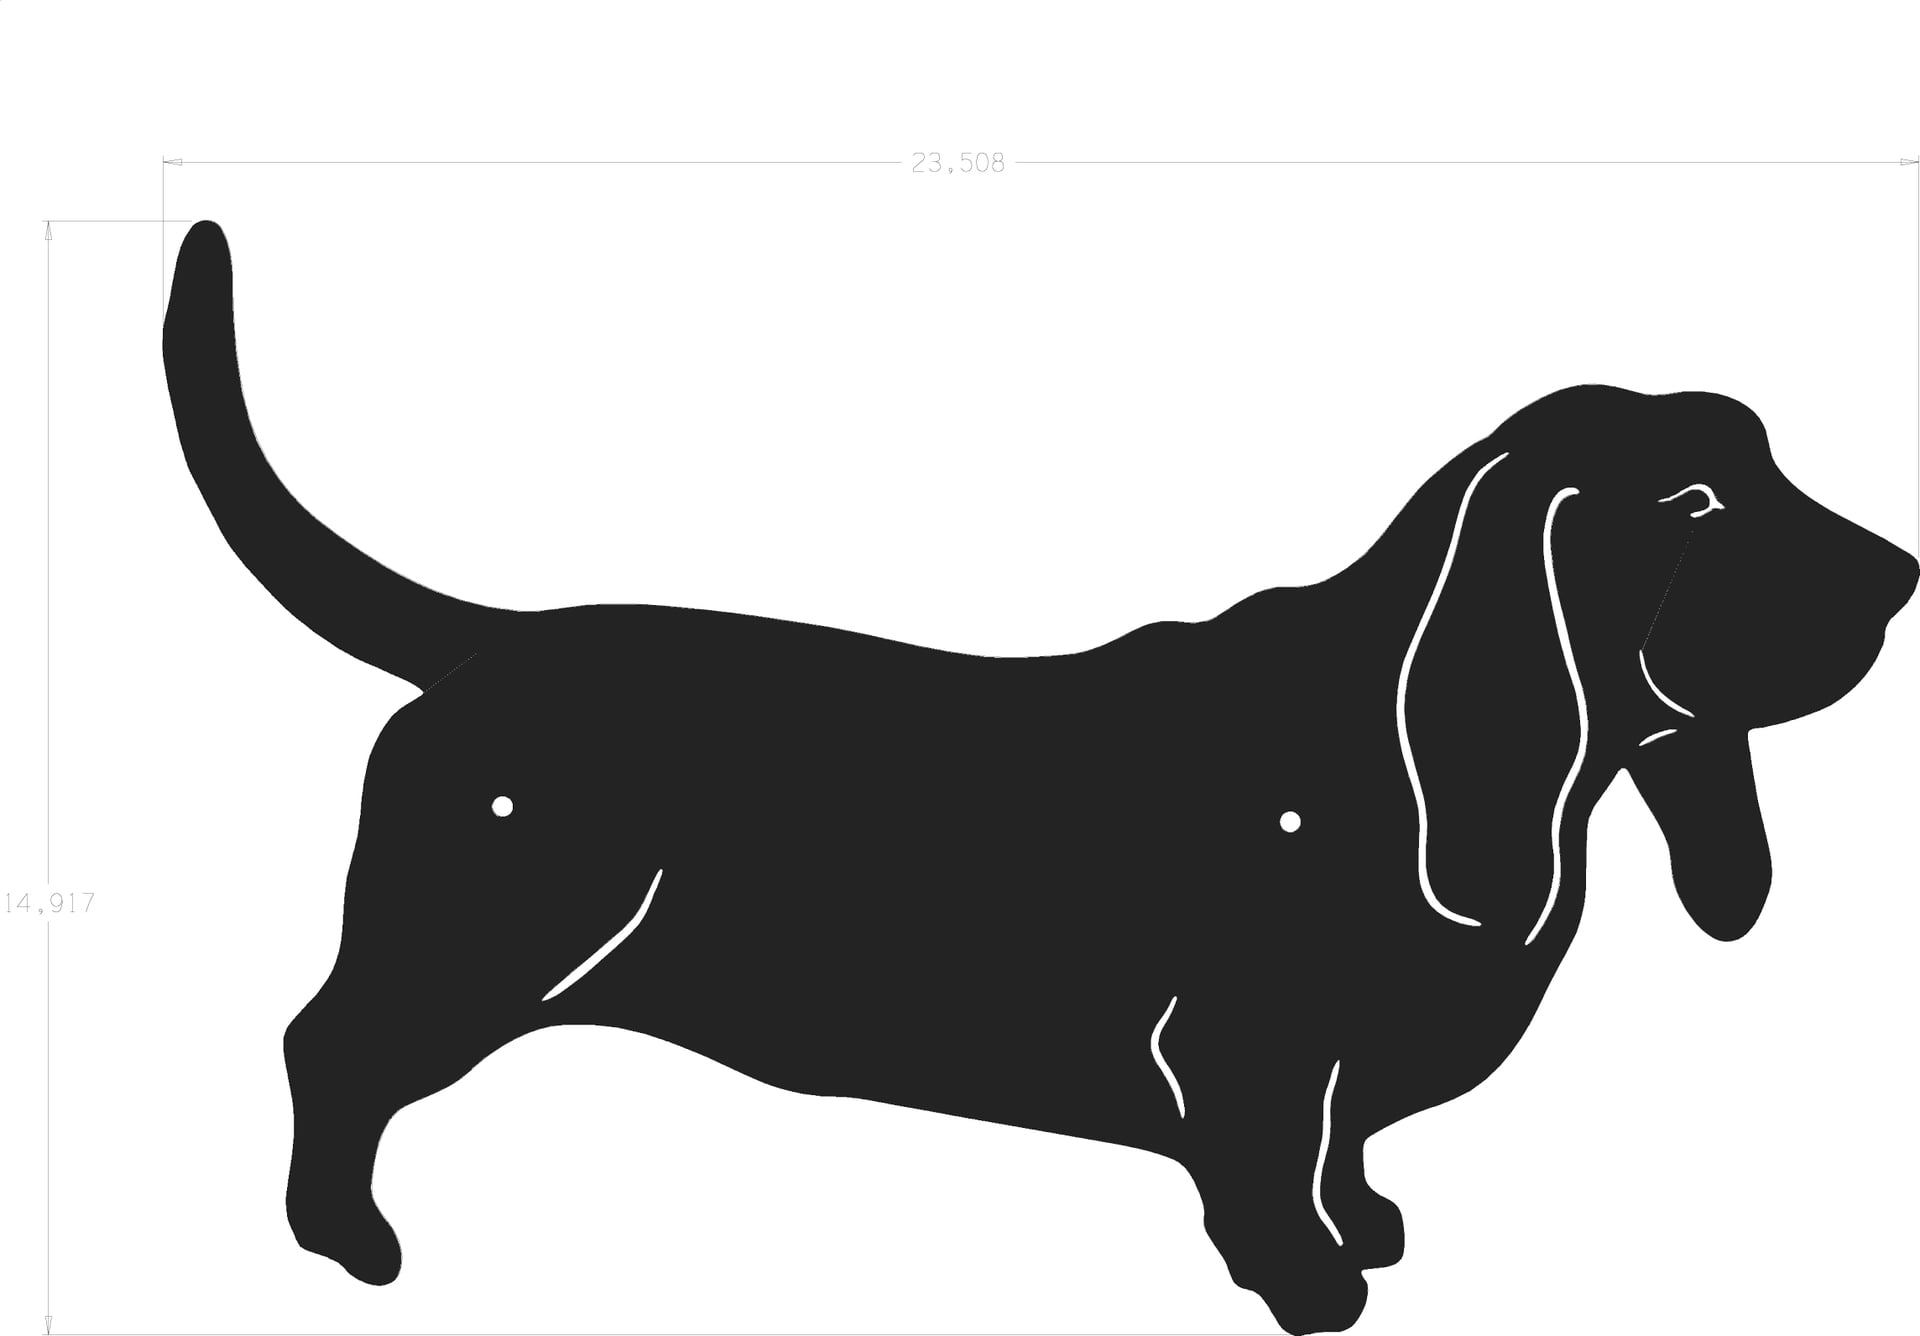 Basset hound silhouette clipart png royalty free library Silhouette - Basset Hound png royalty free library